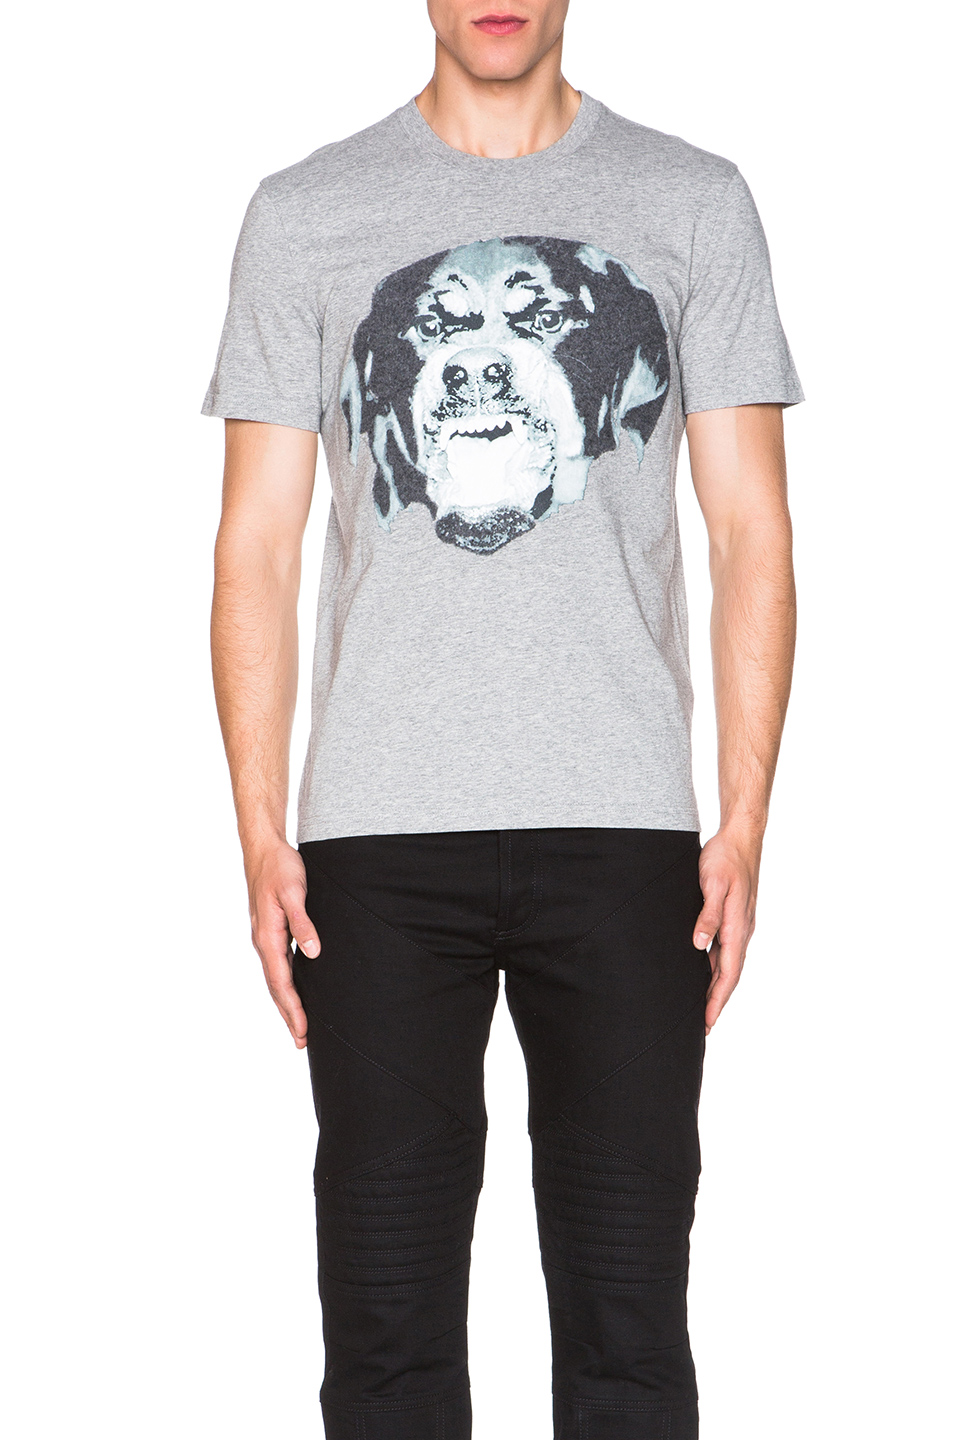 Givenchy Cuban Fit Rottweiler Tee in Gray